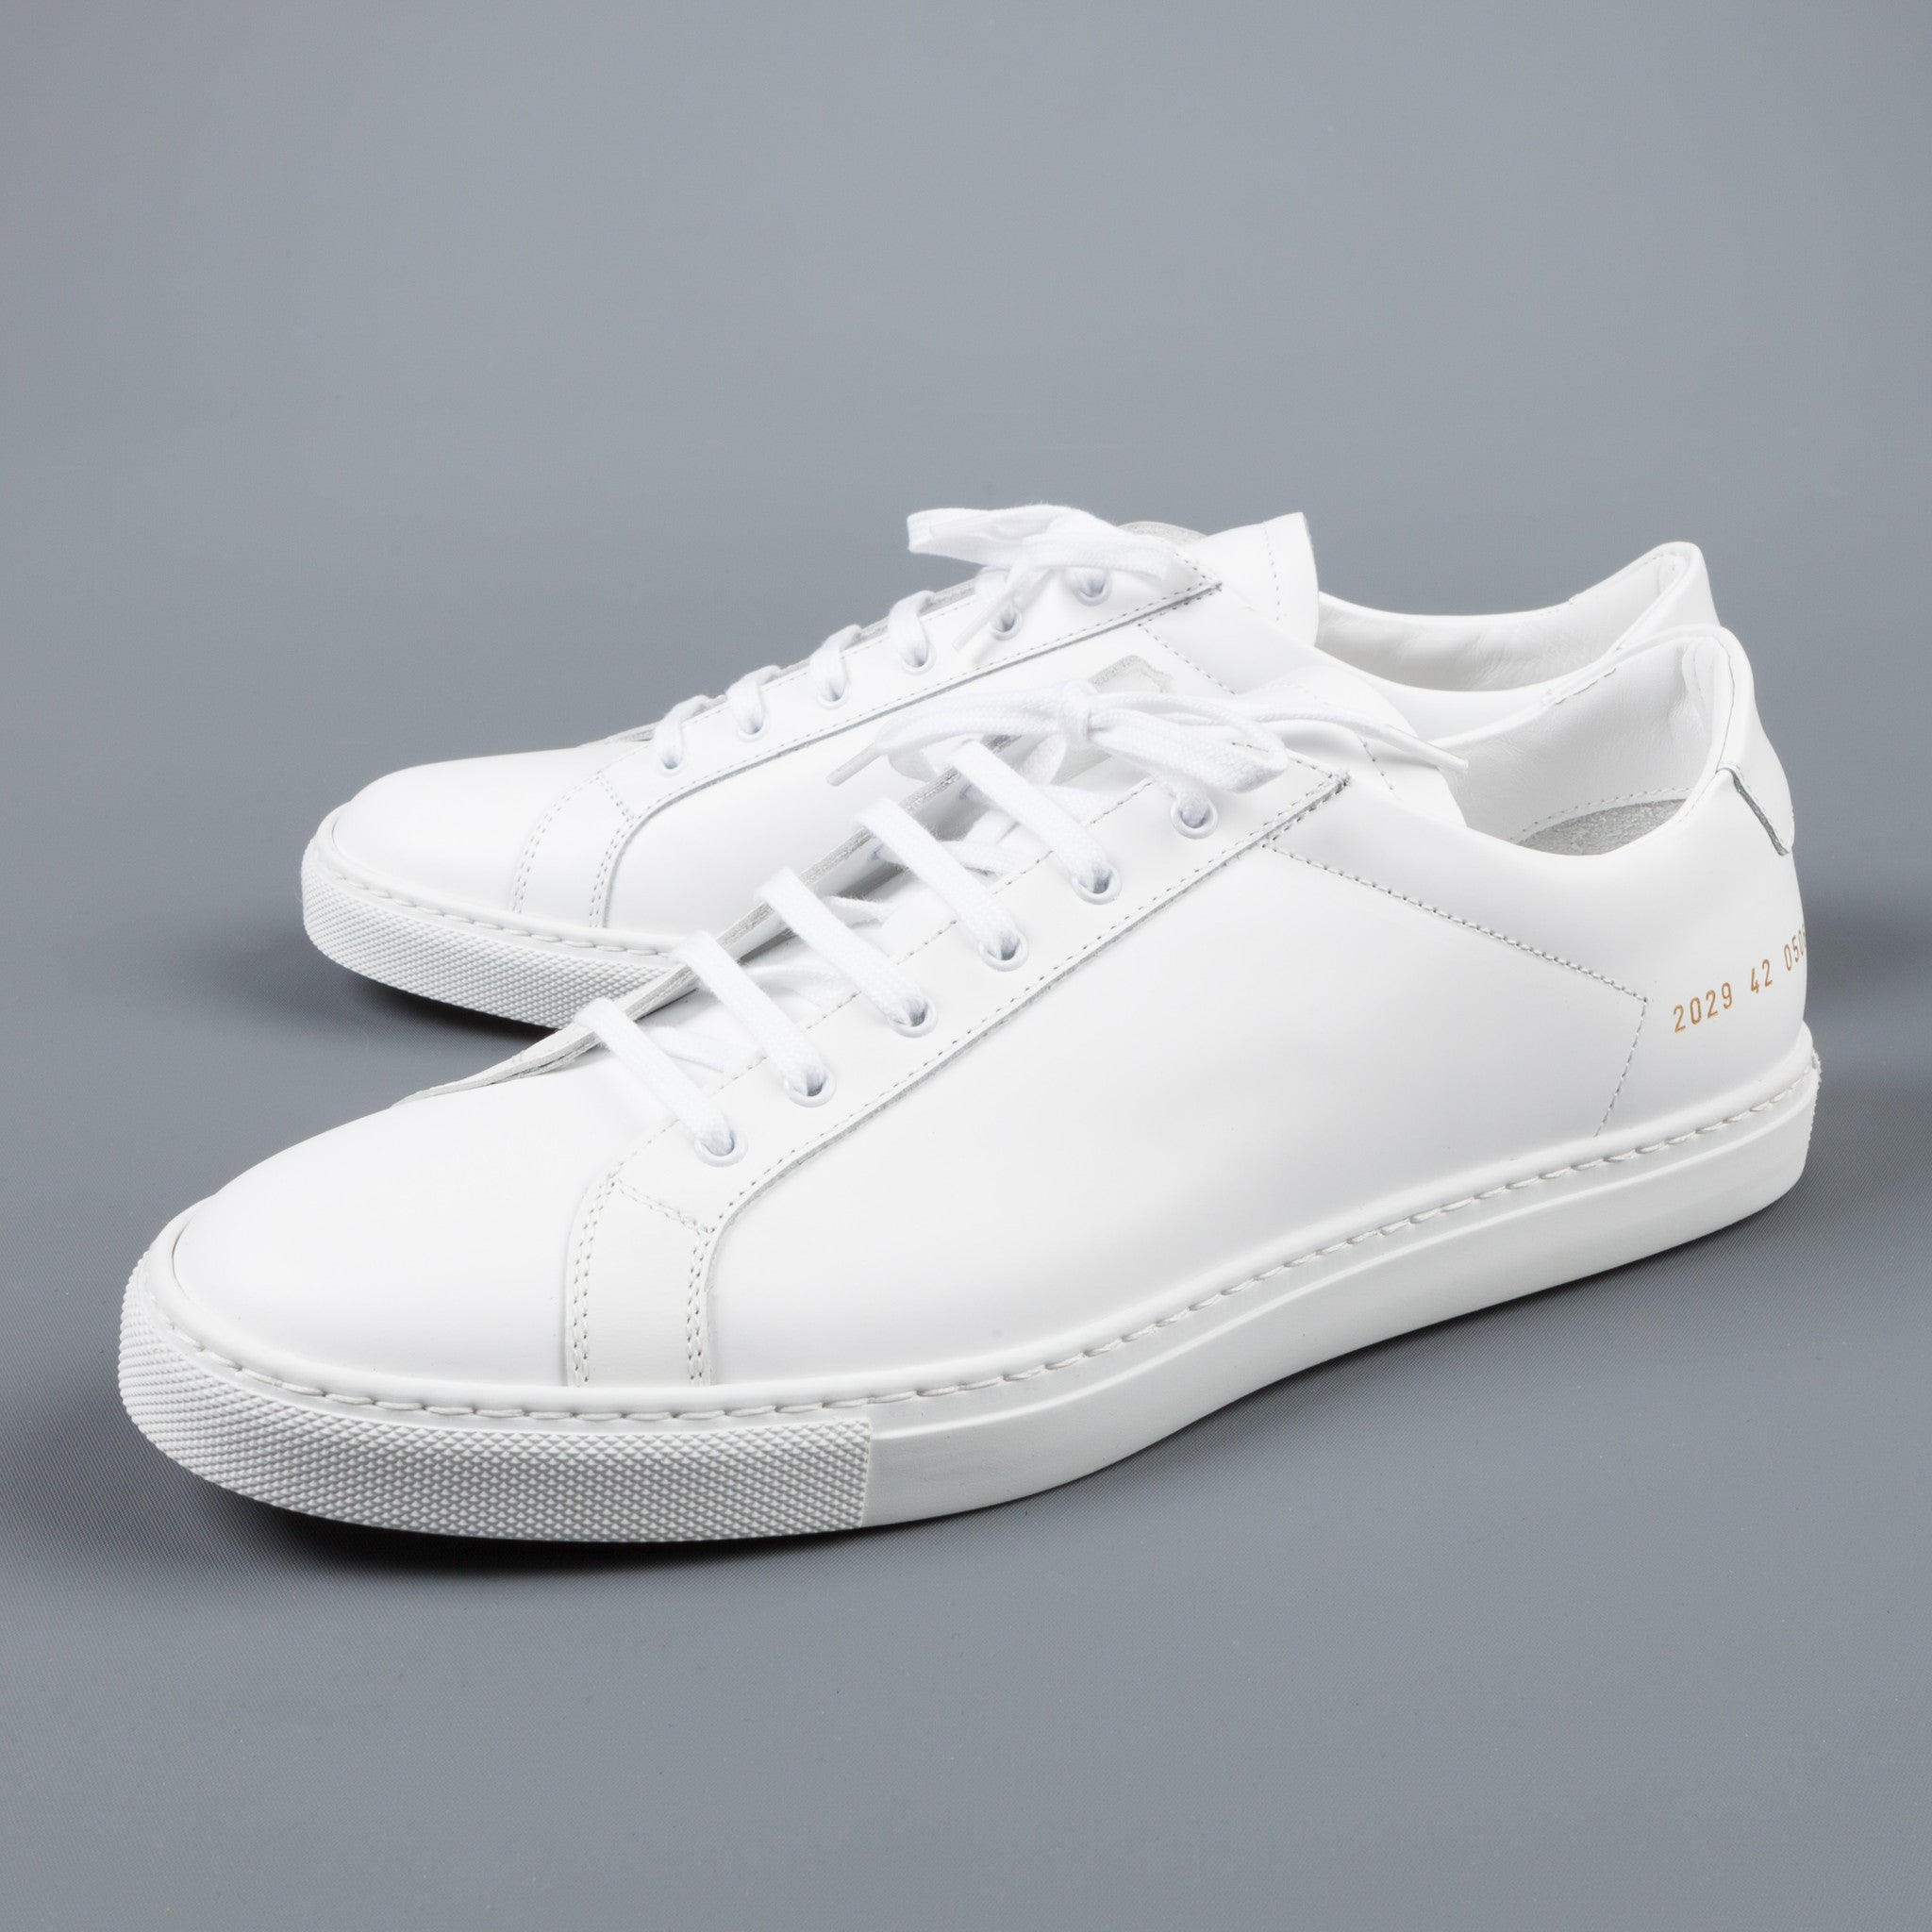 common projects achilles retro low in boxed leather frans boone store. Black Bedroom Furniture Sets. Home Design Ideas